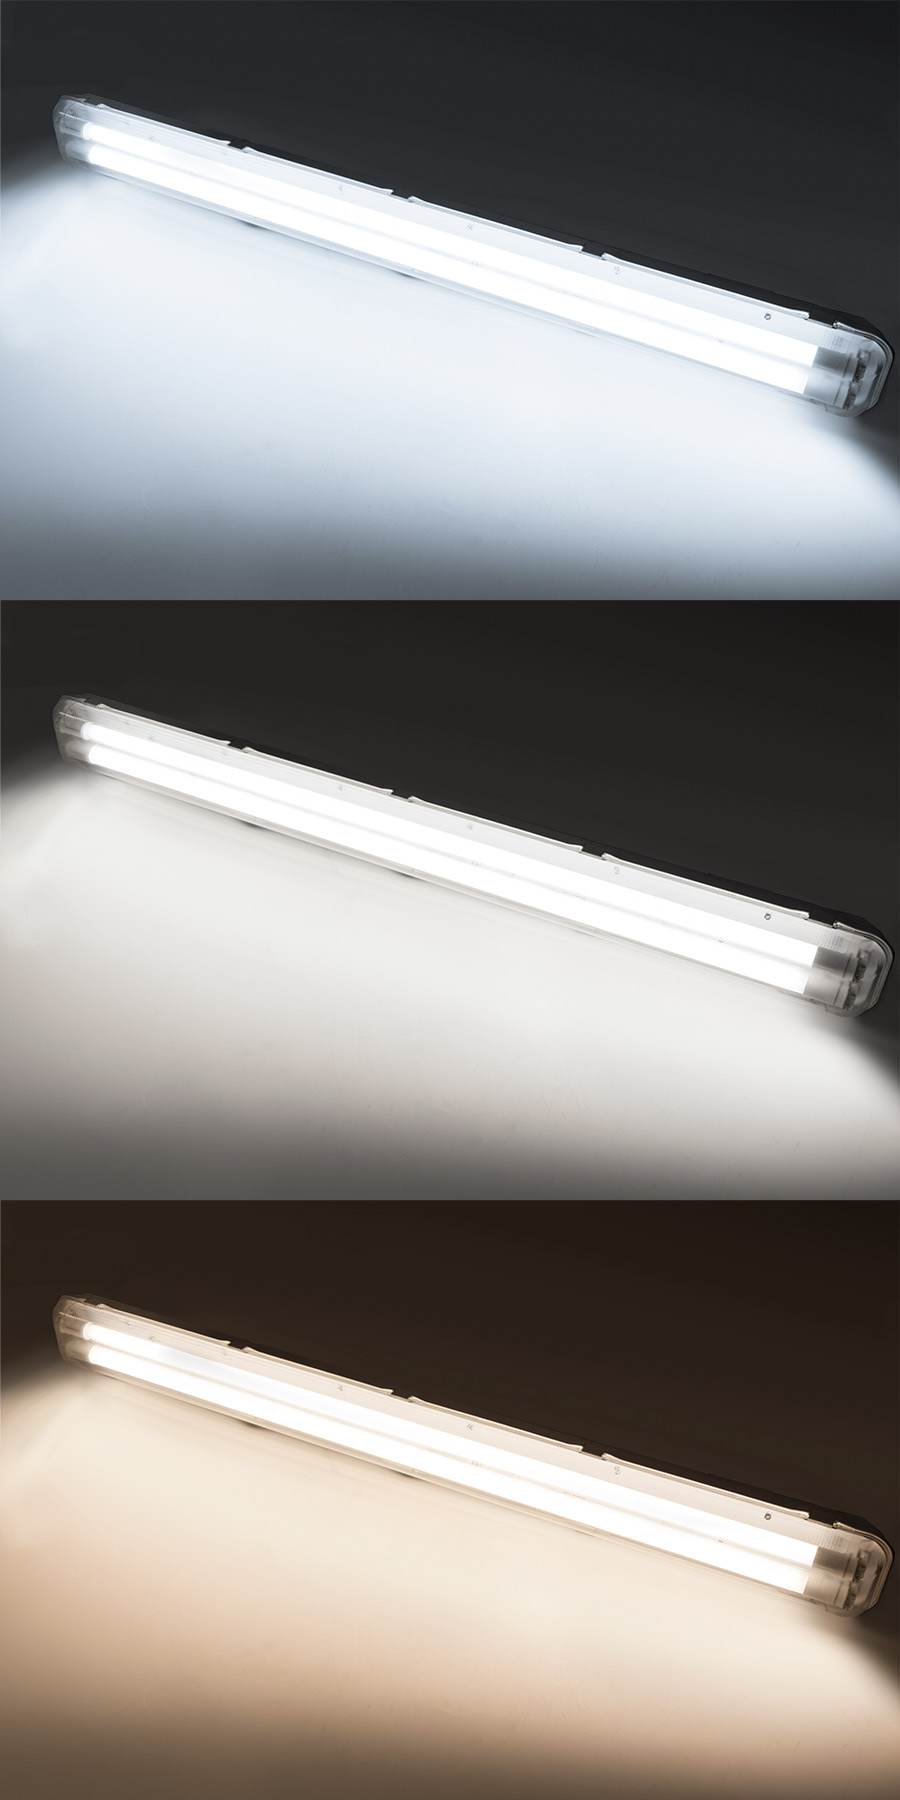 Led T8 T8 Vapor Tight Led Light Fixture For 2 Led T8 Tubes Industrial Led Light 4 Long